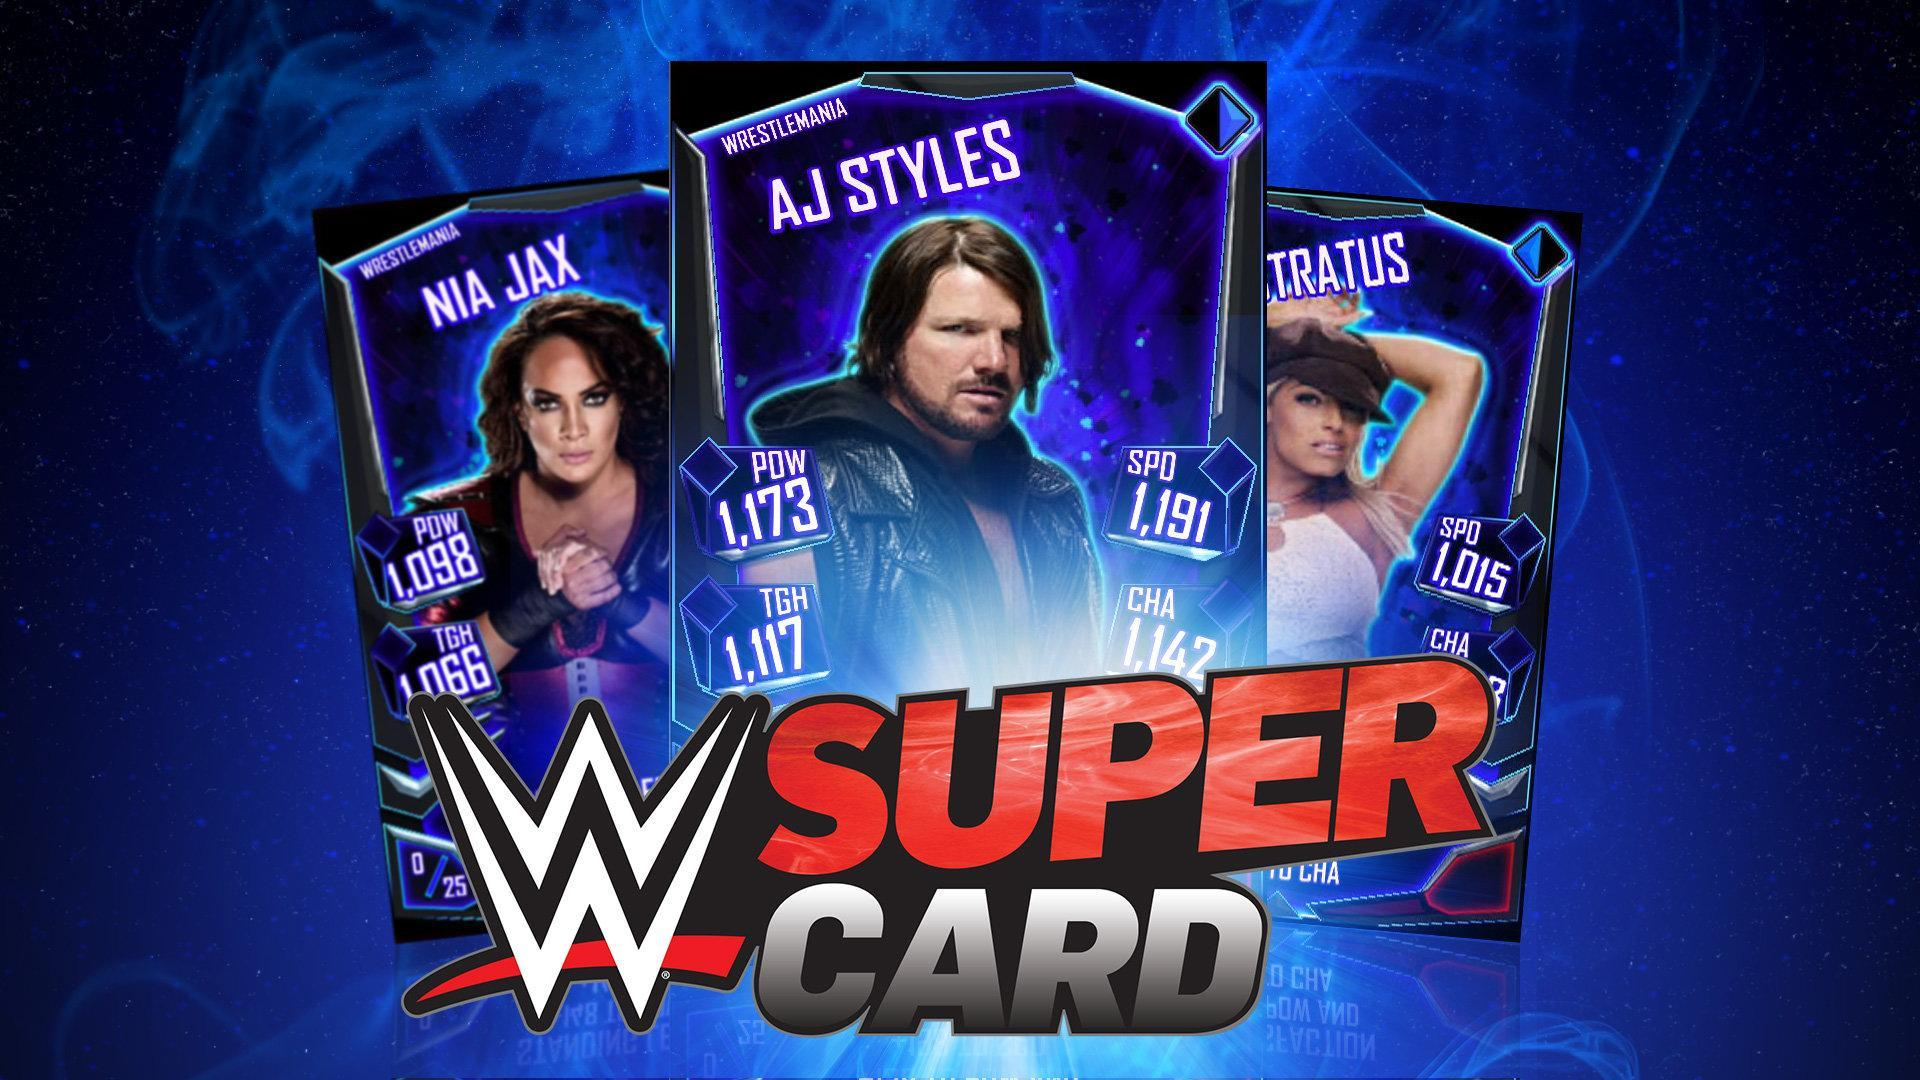 WWE SuperCard WrestleMania Tier Announced: over 70 cards, AJ Styles debuts